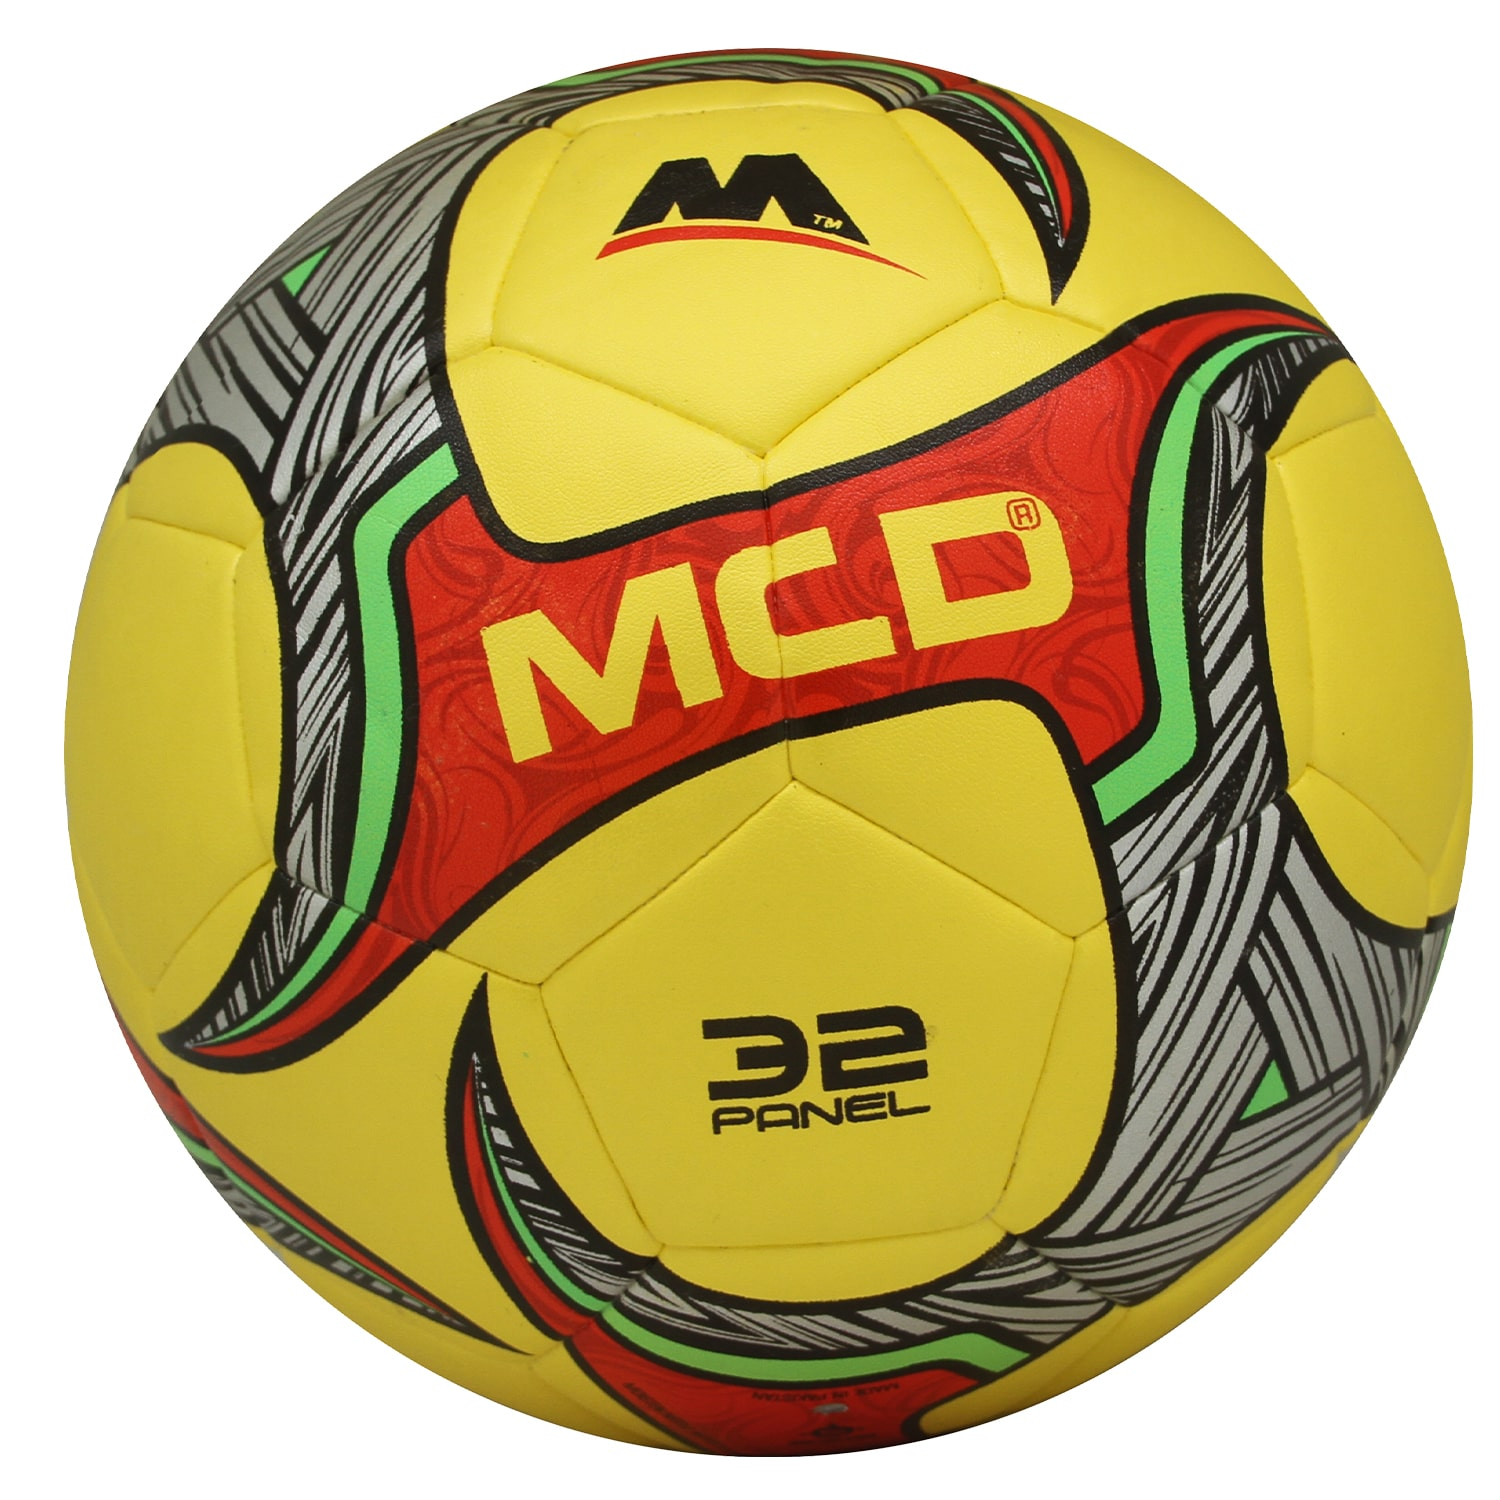 MCD Soccer, Football, Official Match Ball, Match Professional Ball, Hybrid Soccer ball, Official Size 5 & Weight, Adults Soccer Professional Club Team Indoor Outdoor Play Water Proof RINGO Hybrid Football